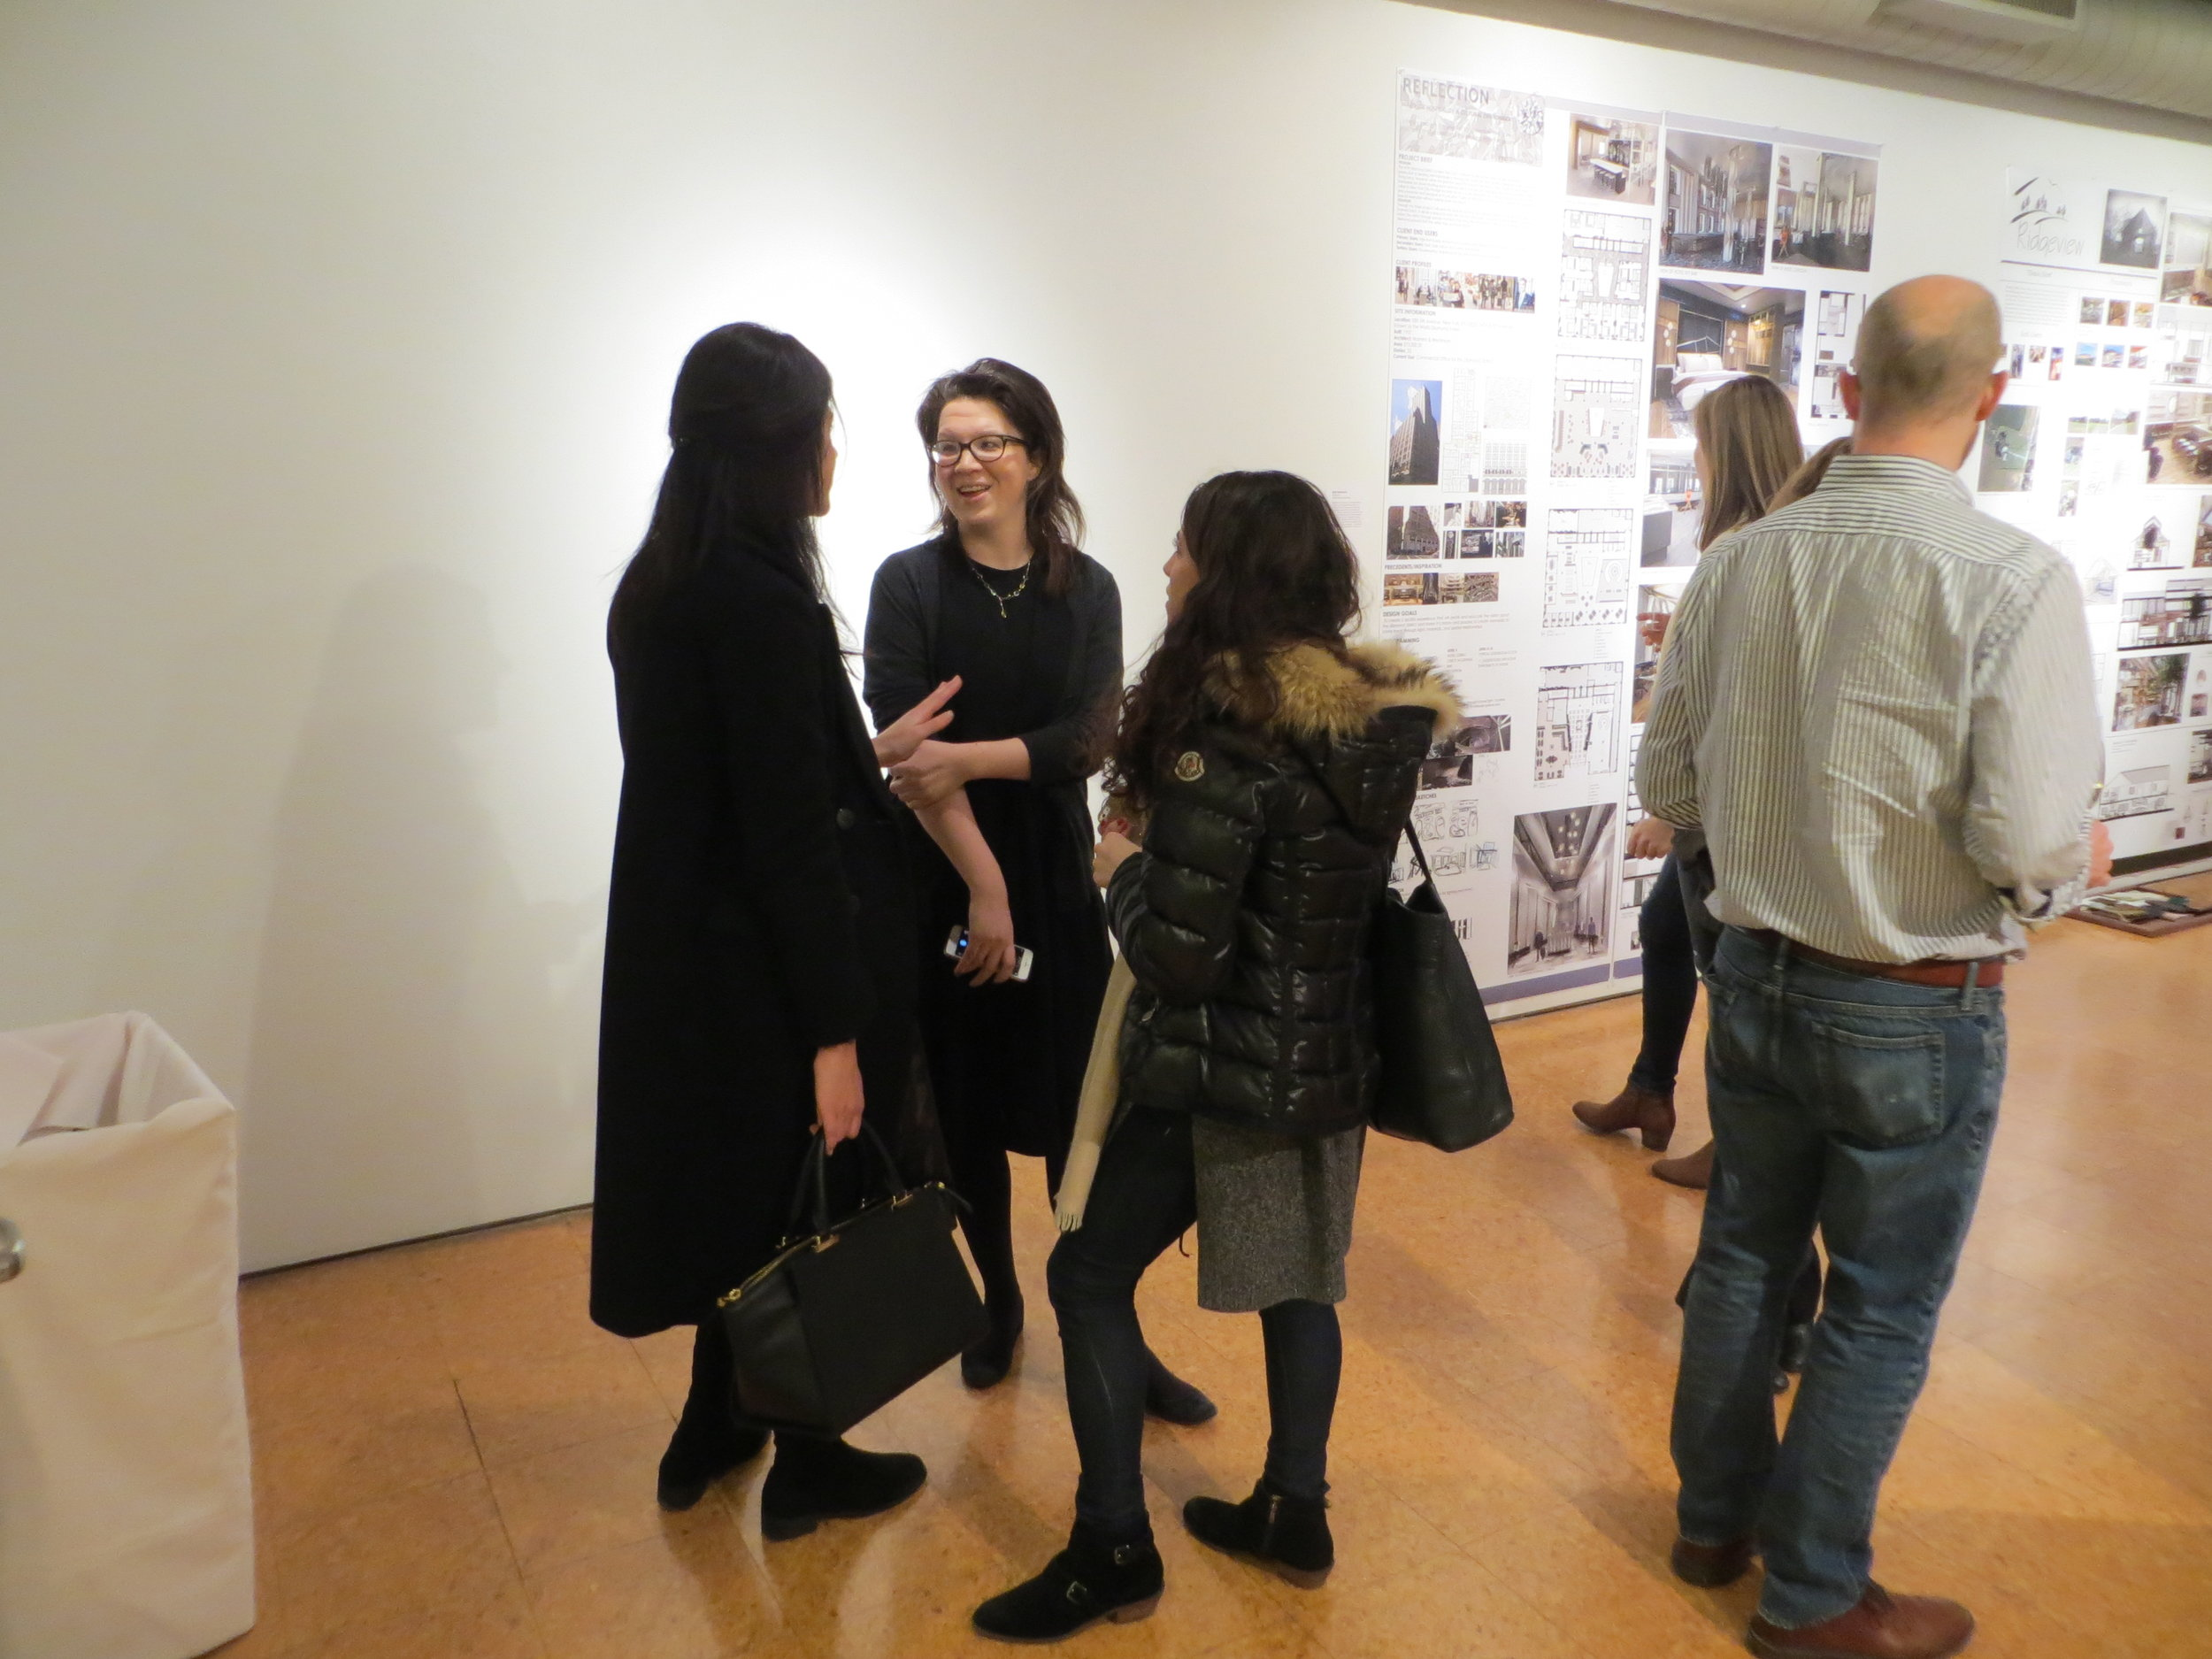 bfa-2017-winter-thesis-projects-exhibition_32712078616_o.jpg